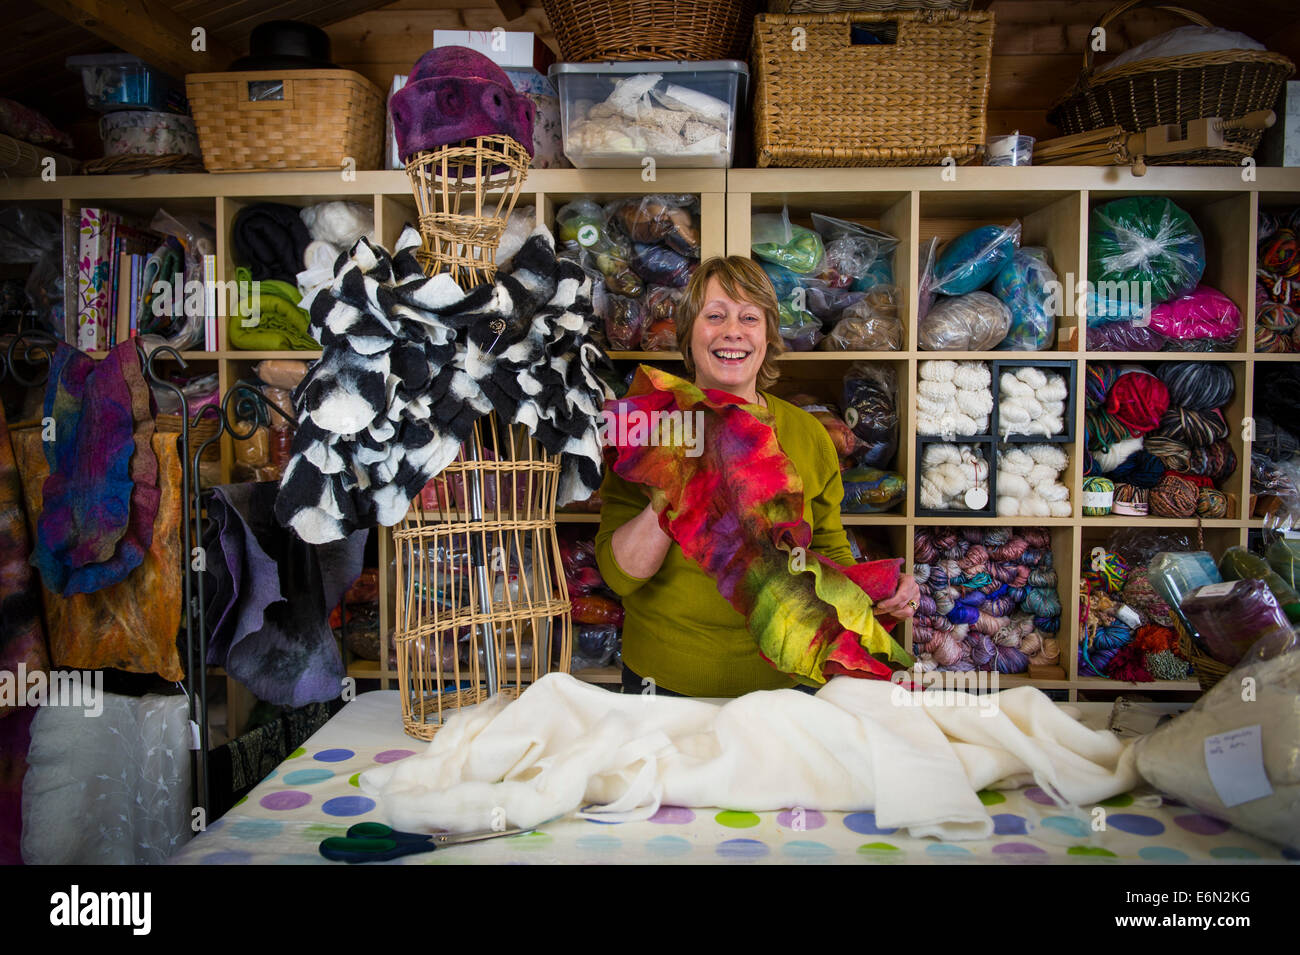 Chrissie Menzies - felt maker , Chrysalis - Art to Wear , with her work in her studio at Llanerfyl, Powys Wales - Stock Image